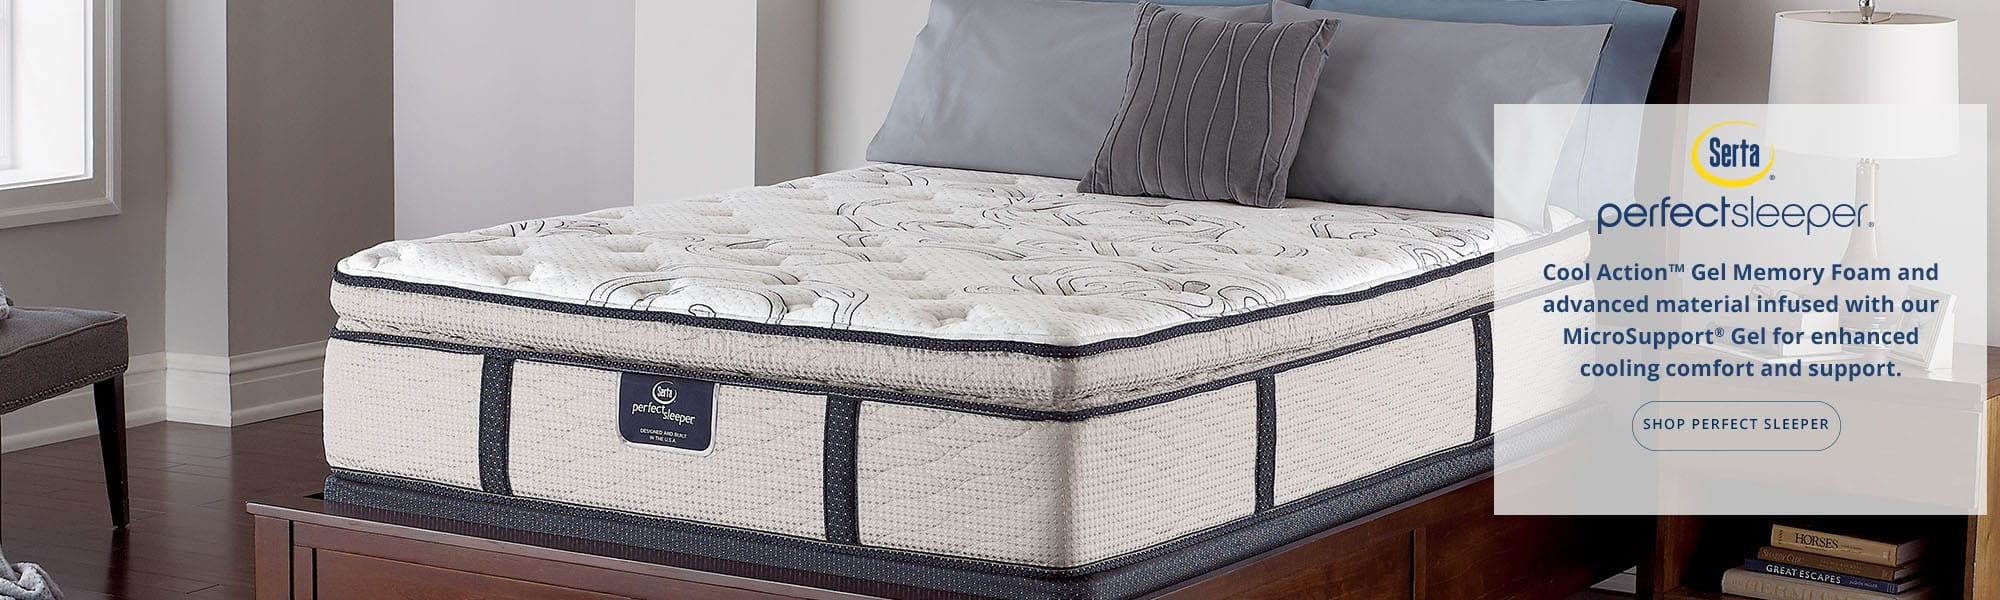 Serta Perfect Sleeper banner